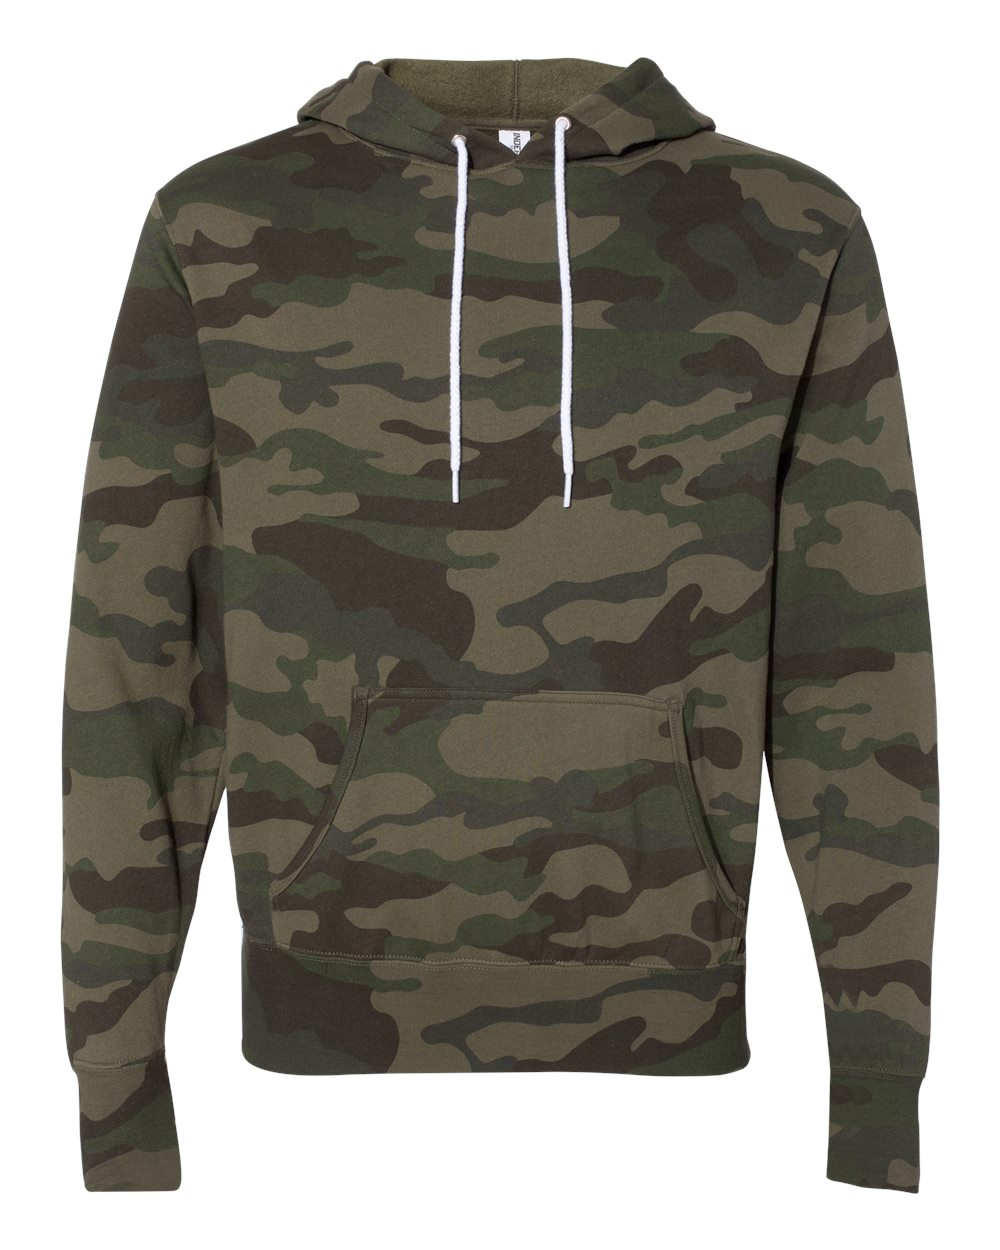 DRP-SHP.IO Independent Trading Co. - CAMO Unisex Lightweight Hooded Sweatshirt